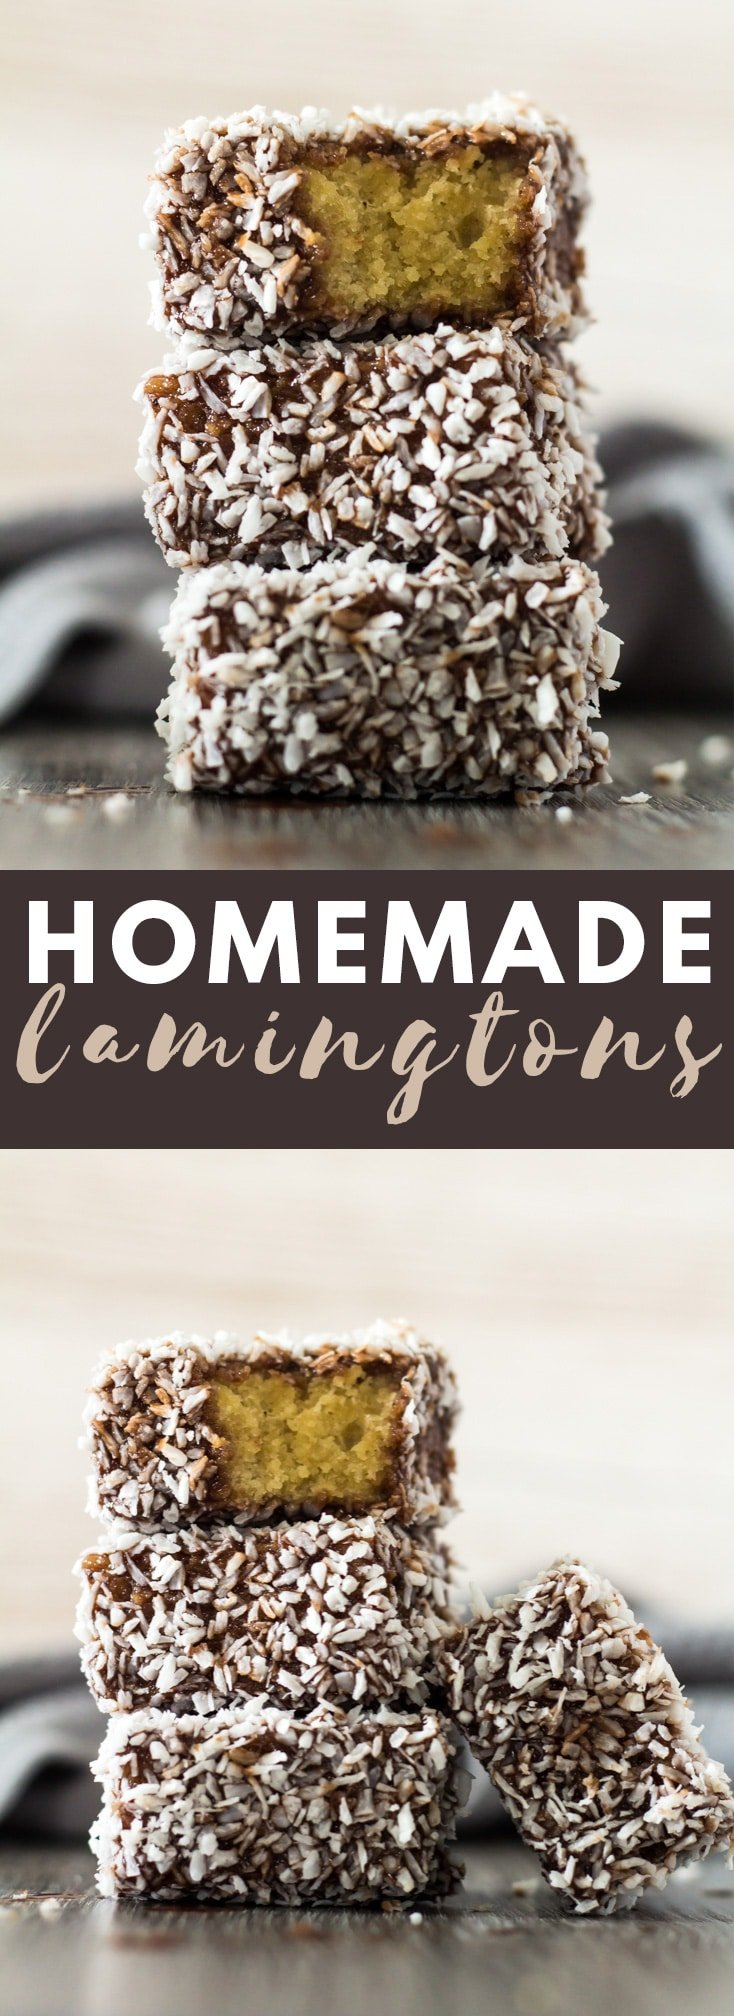 Homemade Lamingtons - Deliciously moist and fluffy squares of sponge cake coated in a layer of chocolate, and rolled in desiccated coconut! #cake #coconut #lamingtons #chocolate #recipe